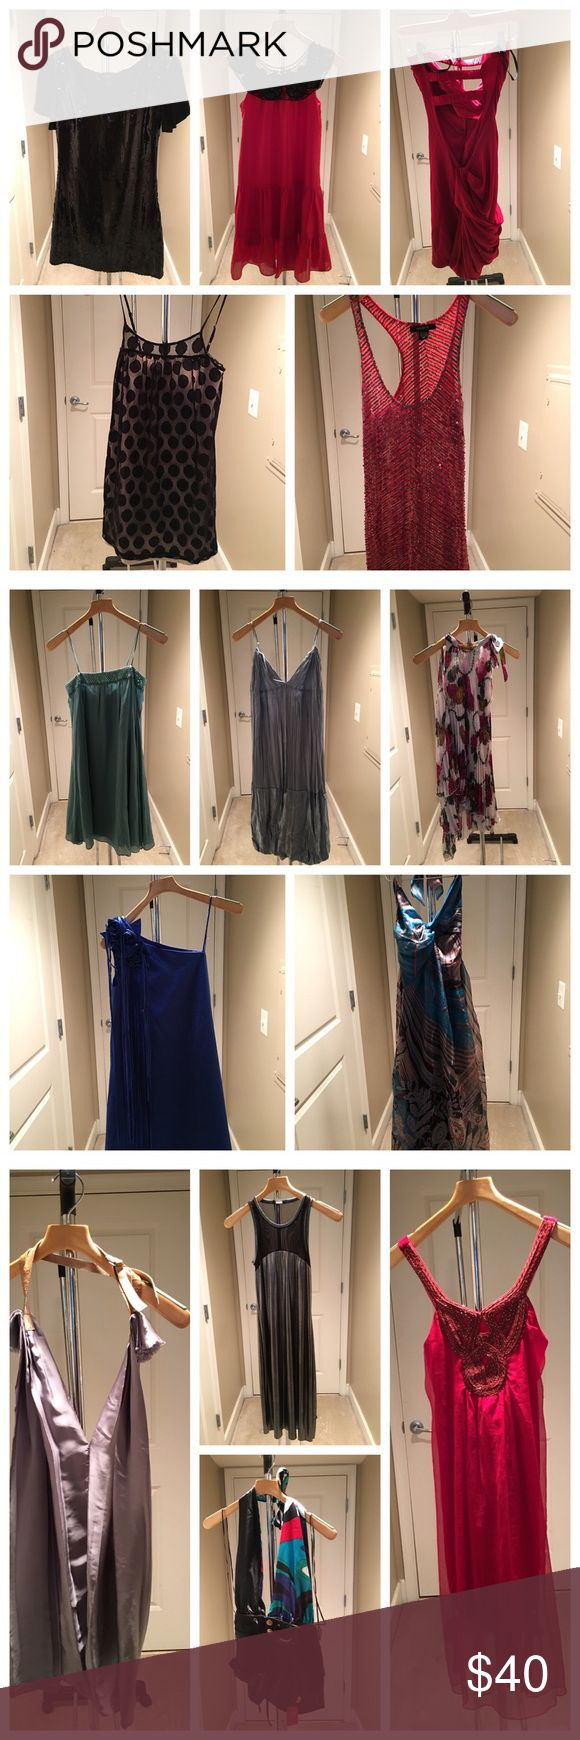 Woman ladies night out Woman night out most of them are brand new and some used. Multiple different brands. BCBG/ Bebe/Sisley and etc. BCBGMaxAzria Dresses